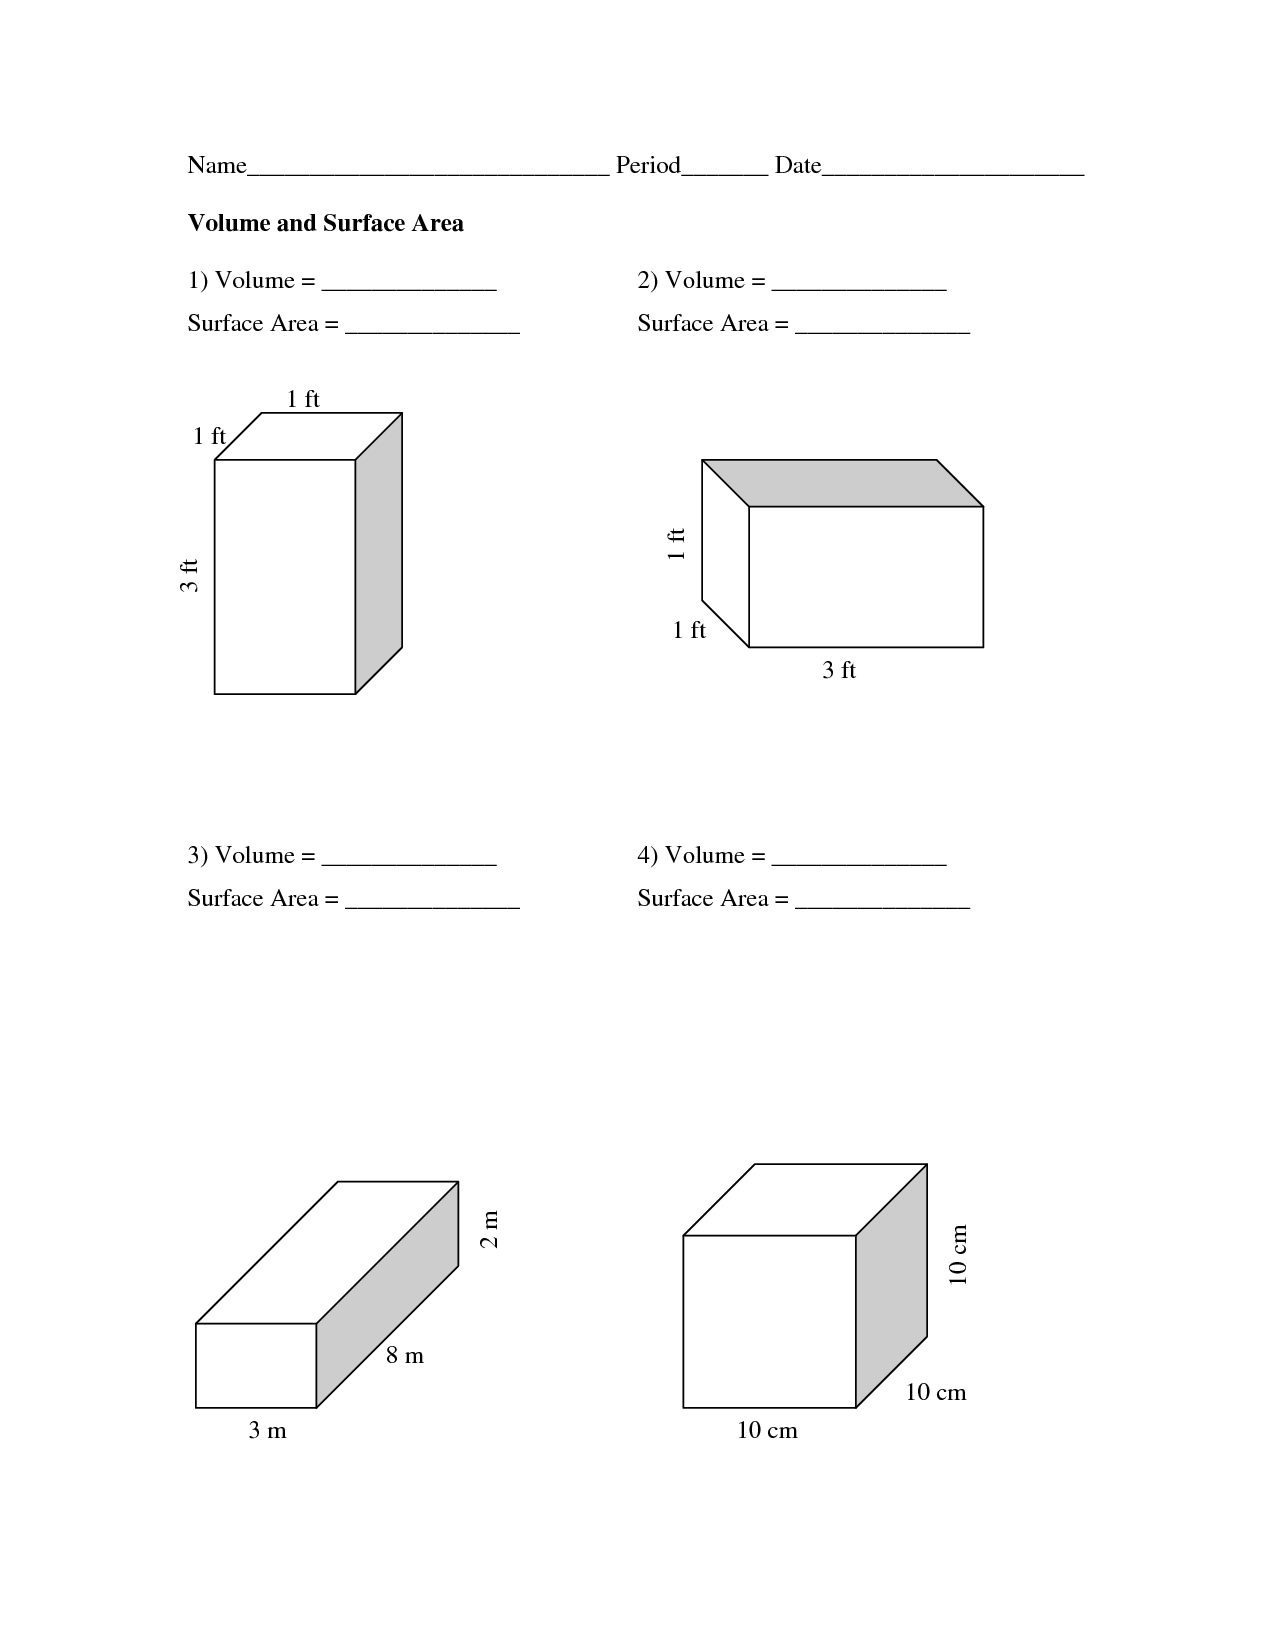 medium resolution of volume and surface area worksheets   Volume and Surface Area Worksheets -  PDF   Area worksheets